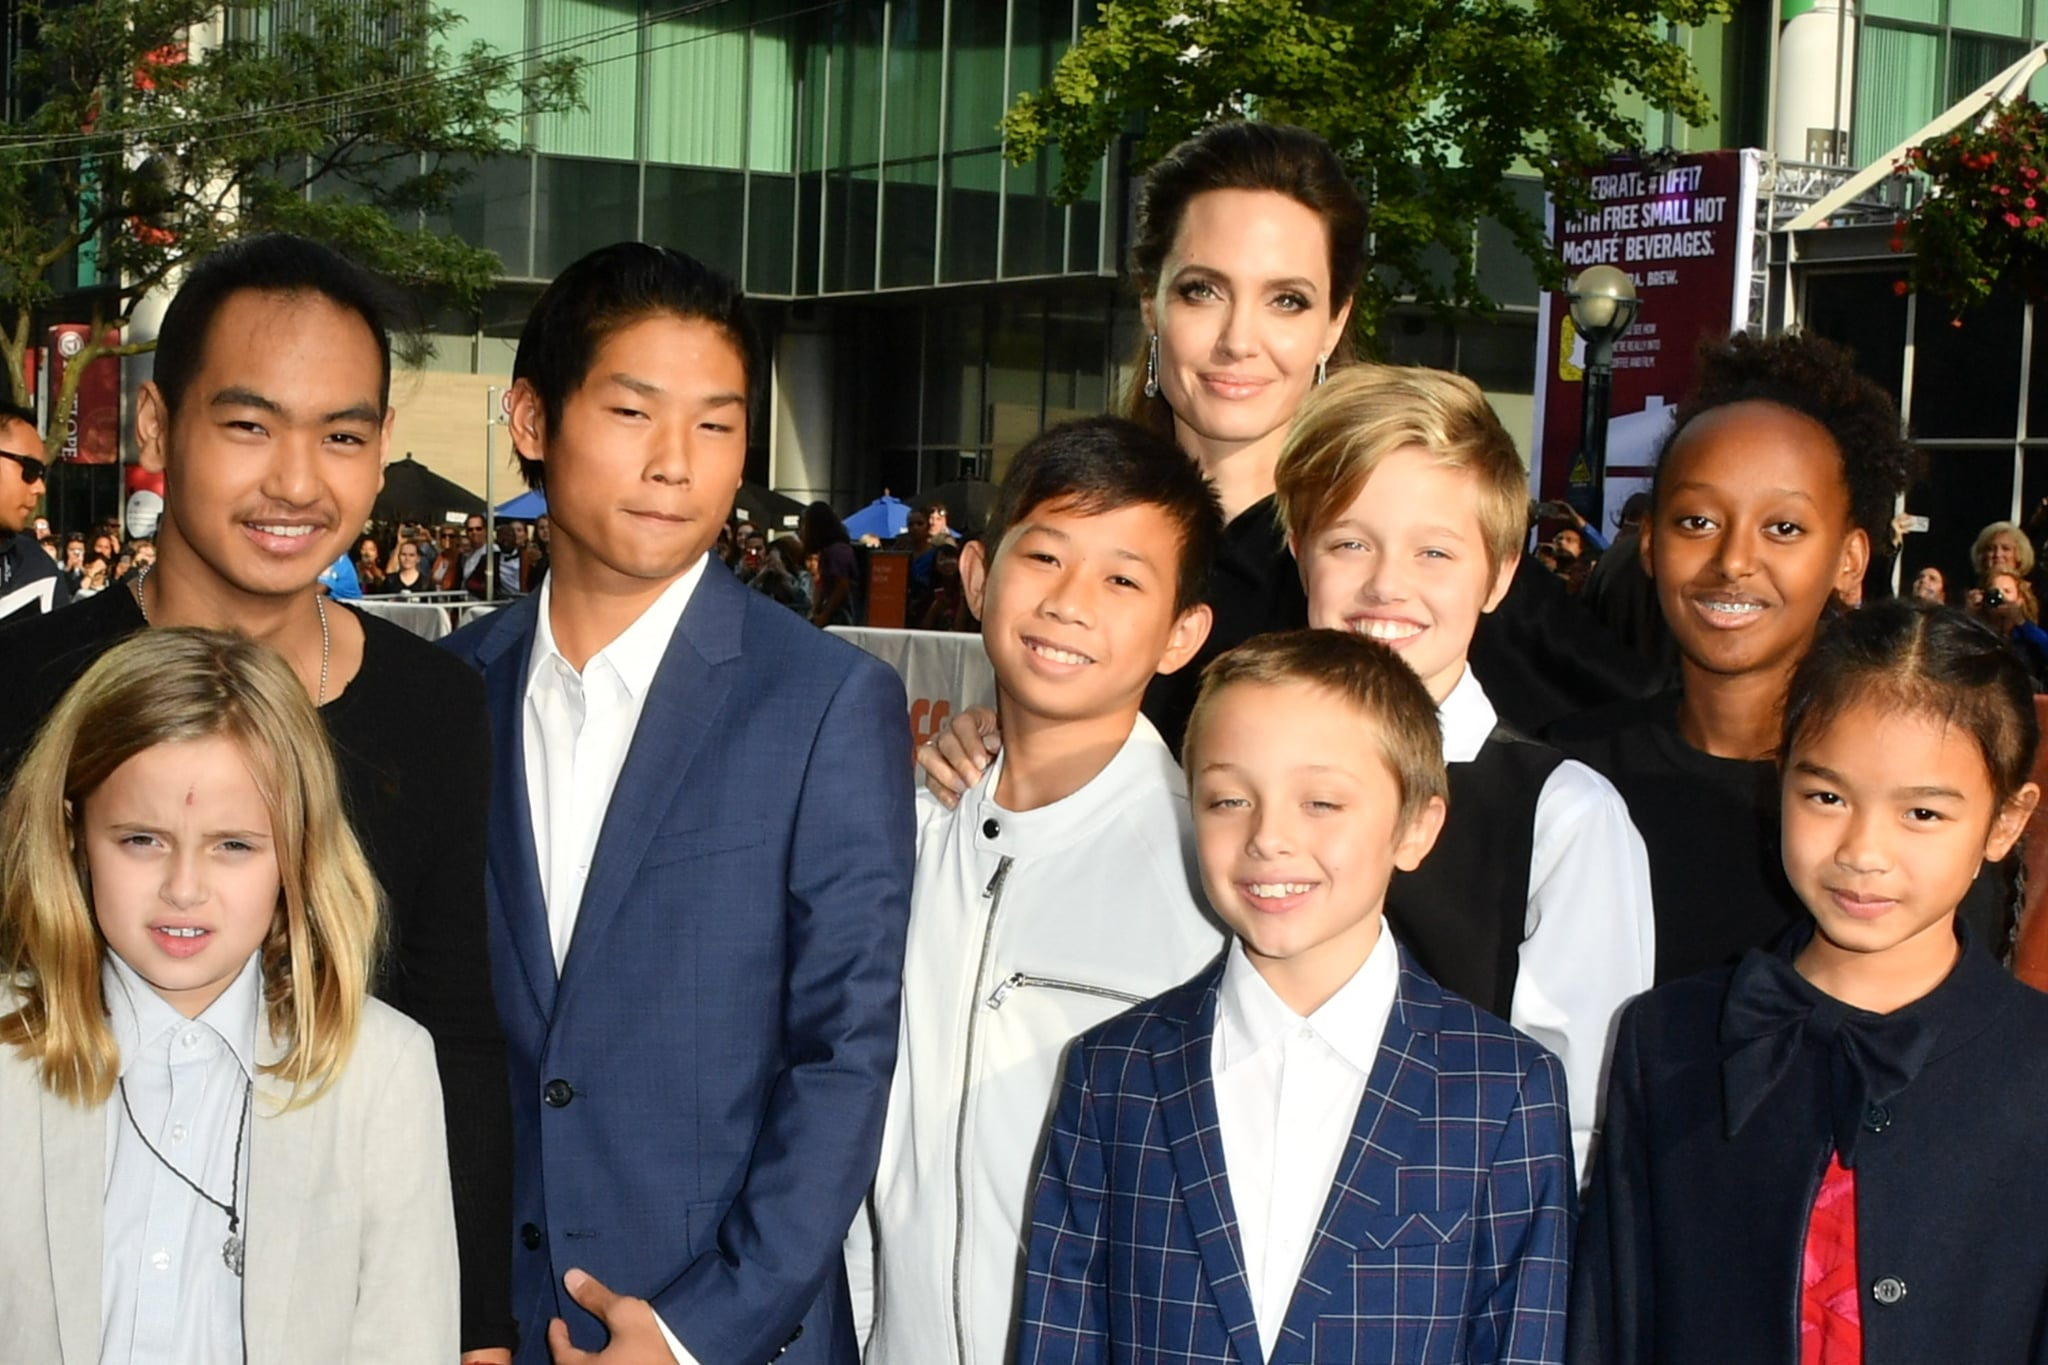 Angelina Jolie's son Maddox opens up about his 'wonder' mom